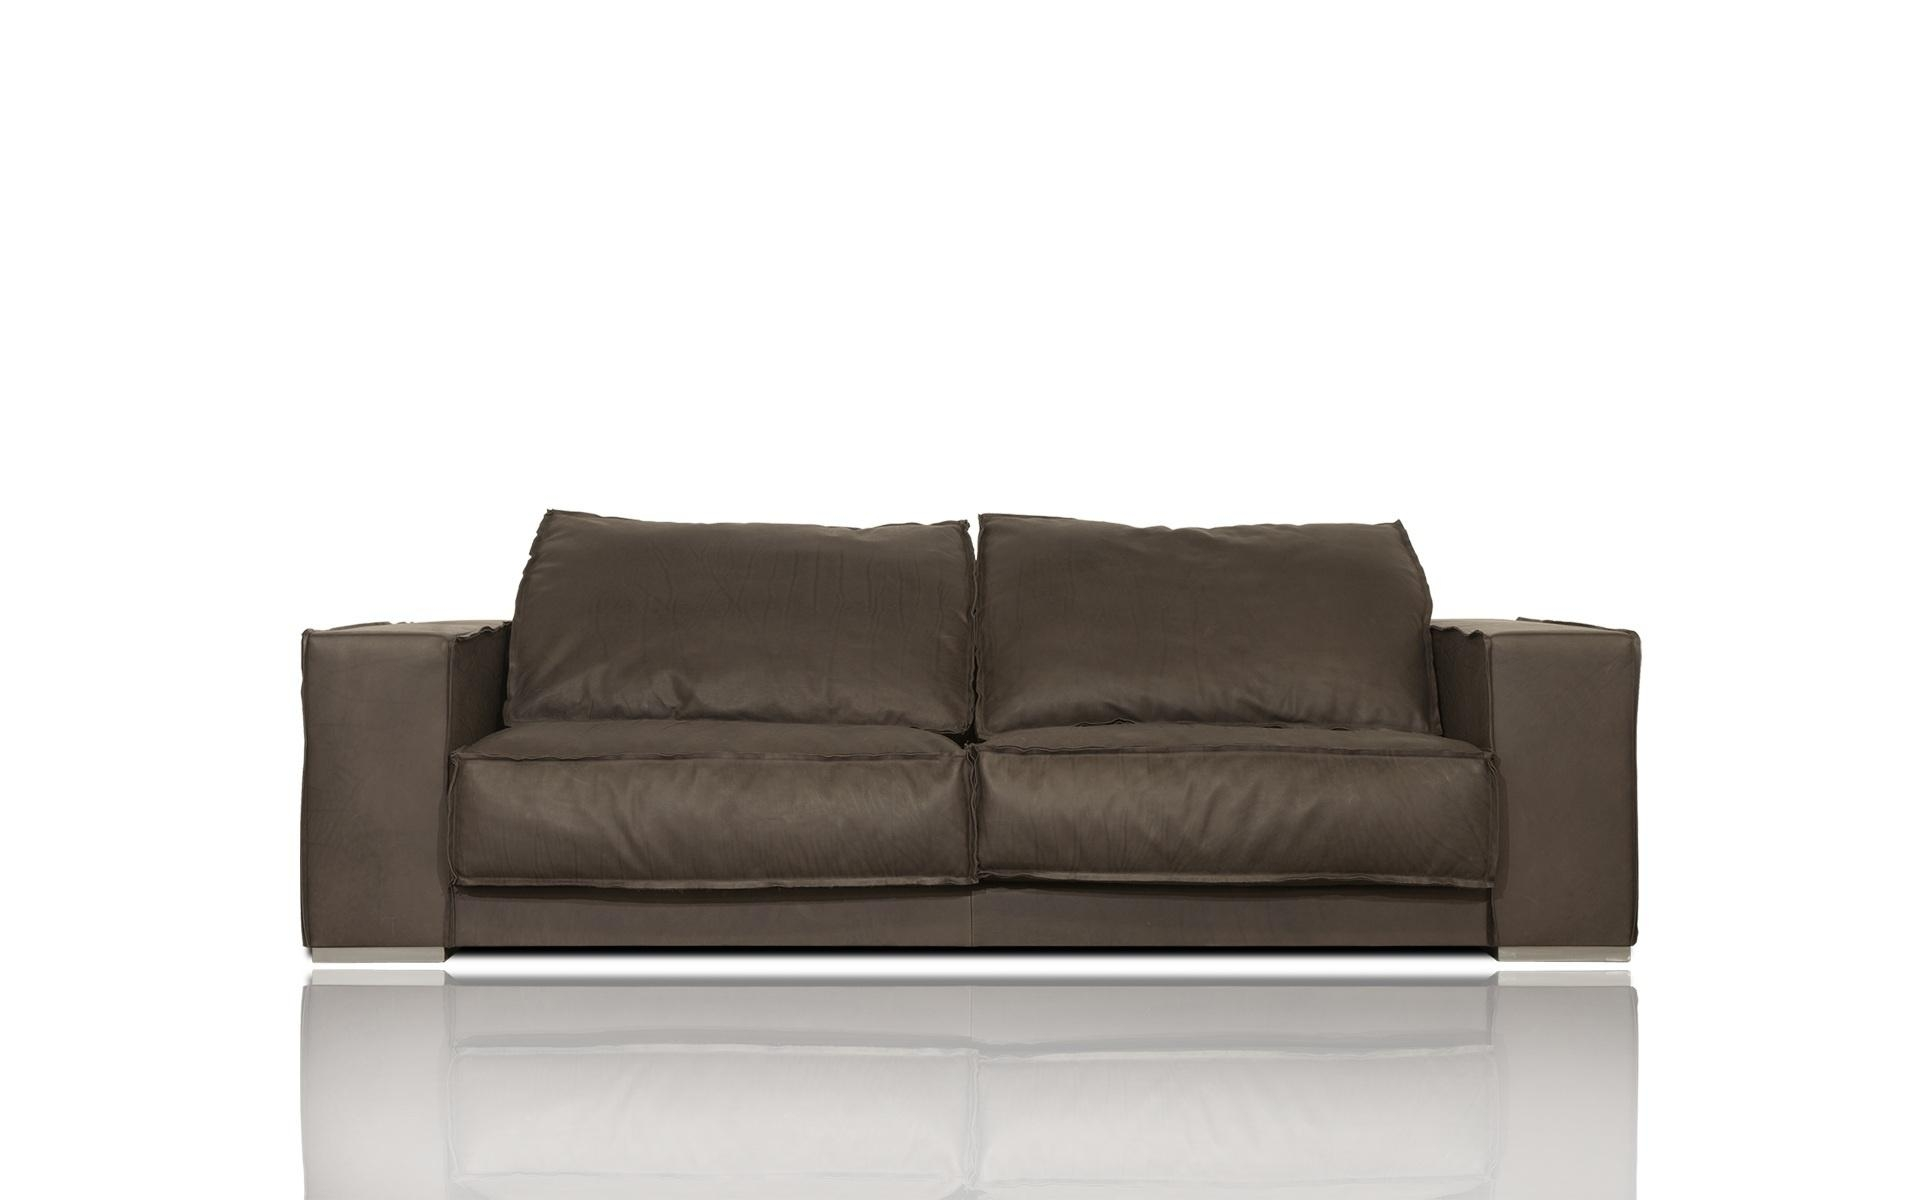 Modular Sofas, Sectional Sofas – Luxury Furniture Mr With Regard To Modular Sofas (Image 18 of 20)